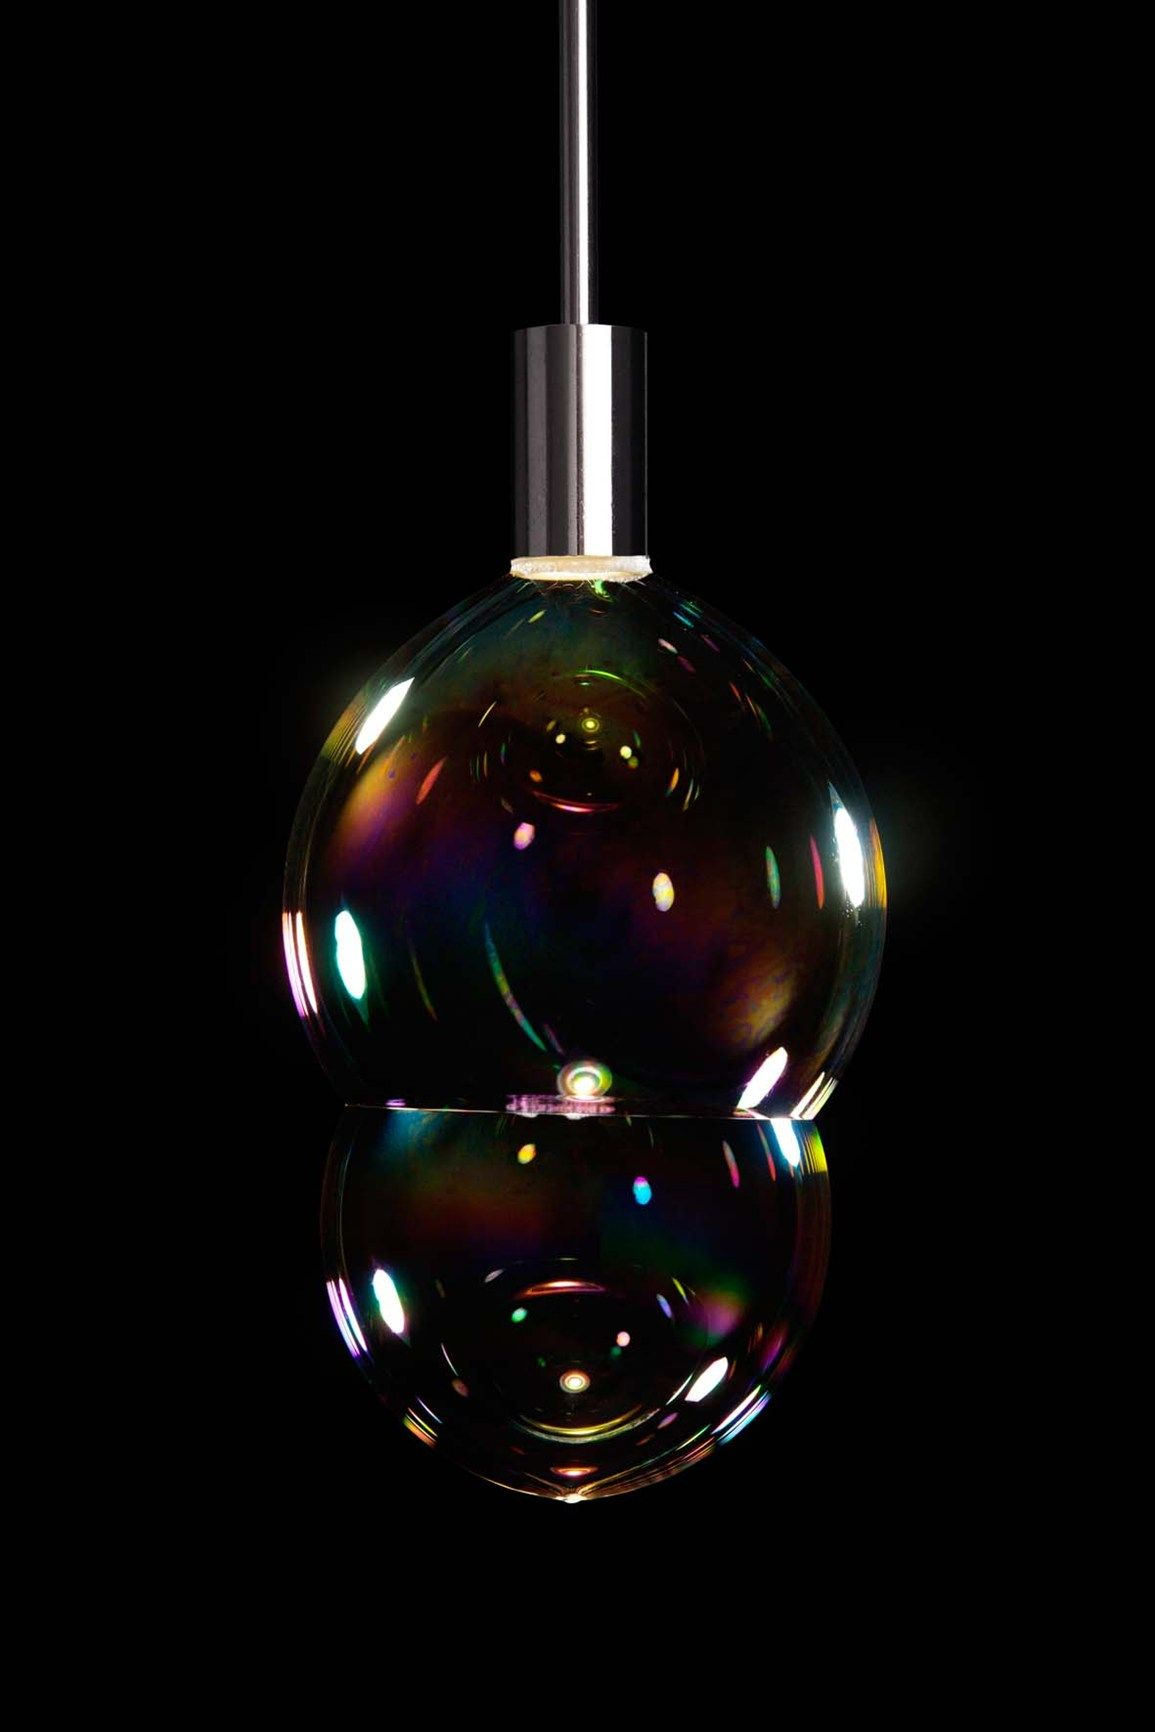 Front, Surface Tension Lamp for Booo, 2012 © Front, photo: Par Olofsson